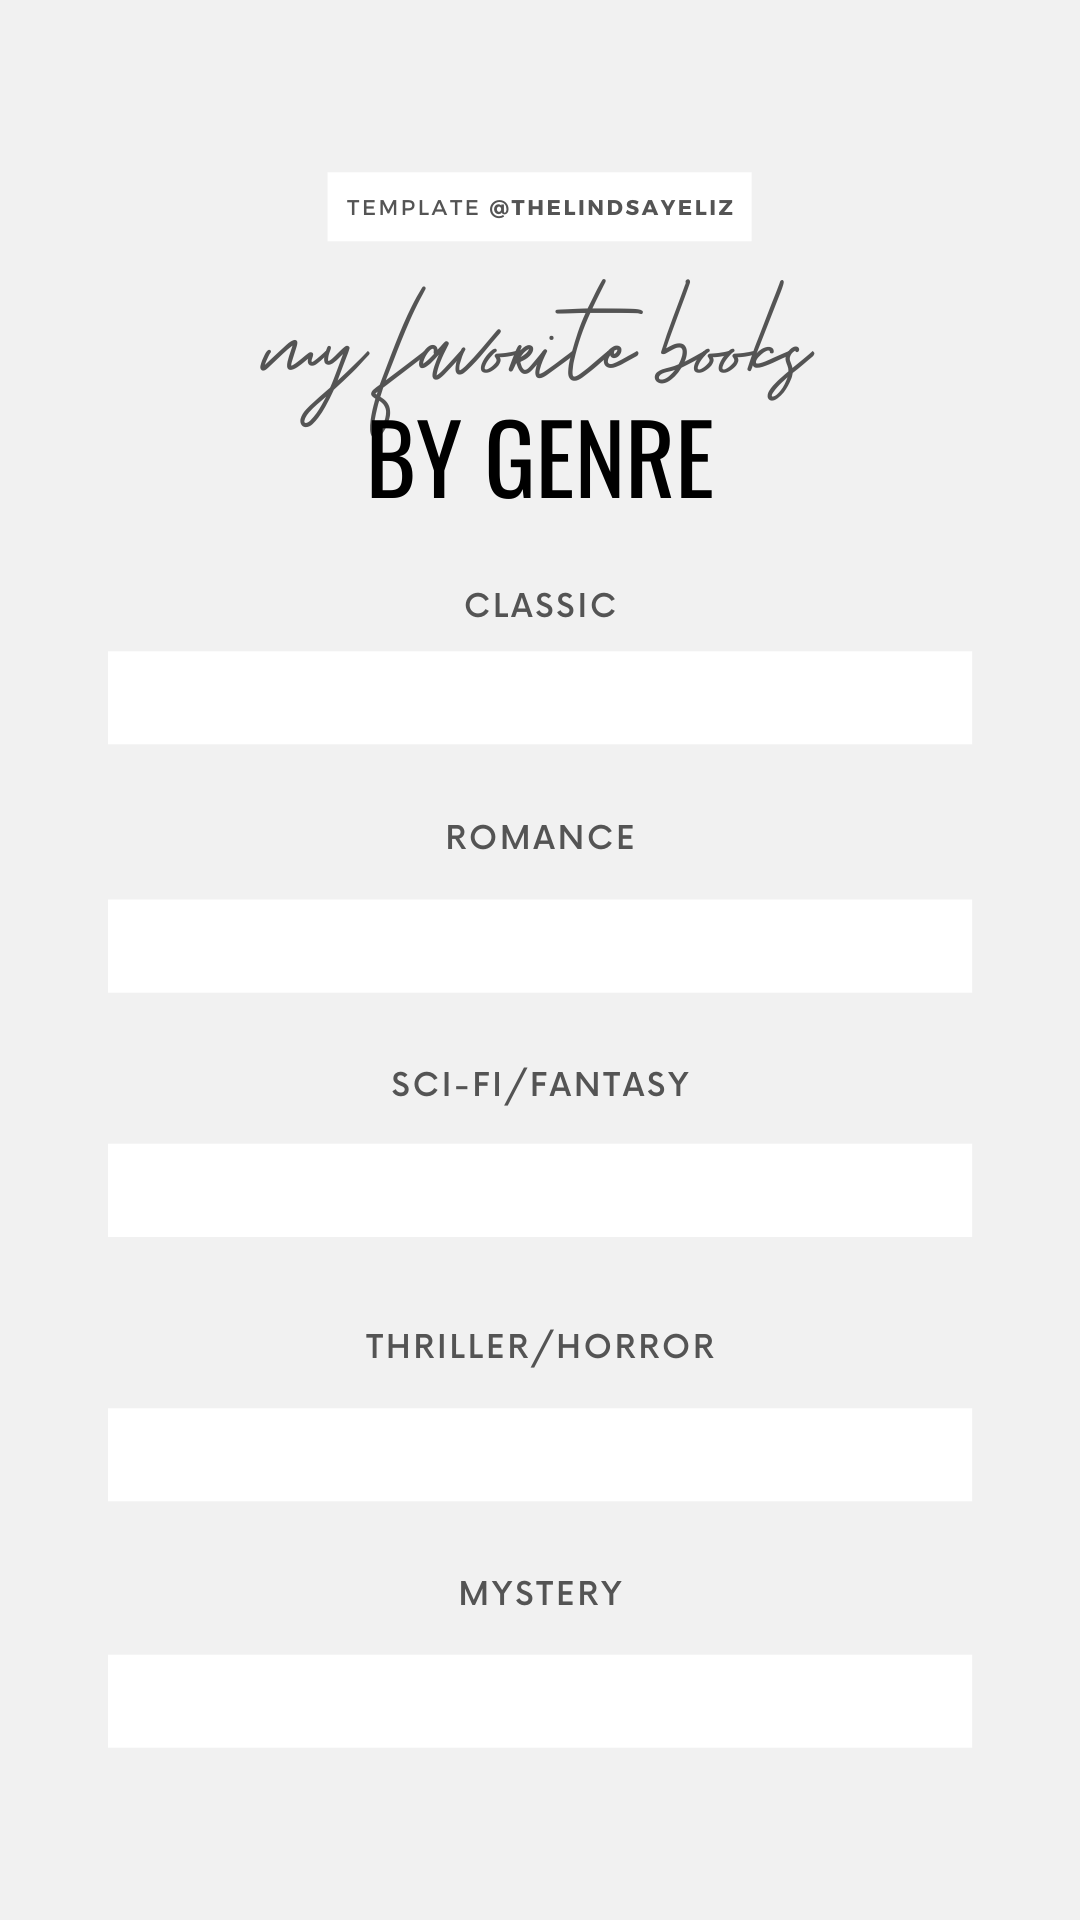 Share your favorite books in each genre with this bookish IG template. Be sure to also click through for more Instagram story templates for book lovers to share your favorite books, preferences, and opinions with your followers. #bookish #igstories #igtemplates #templates #bookastagram